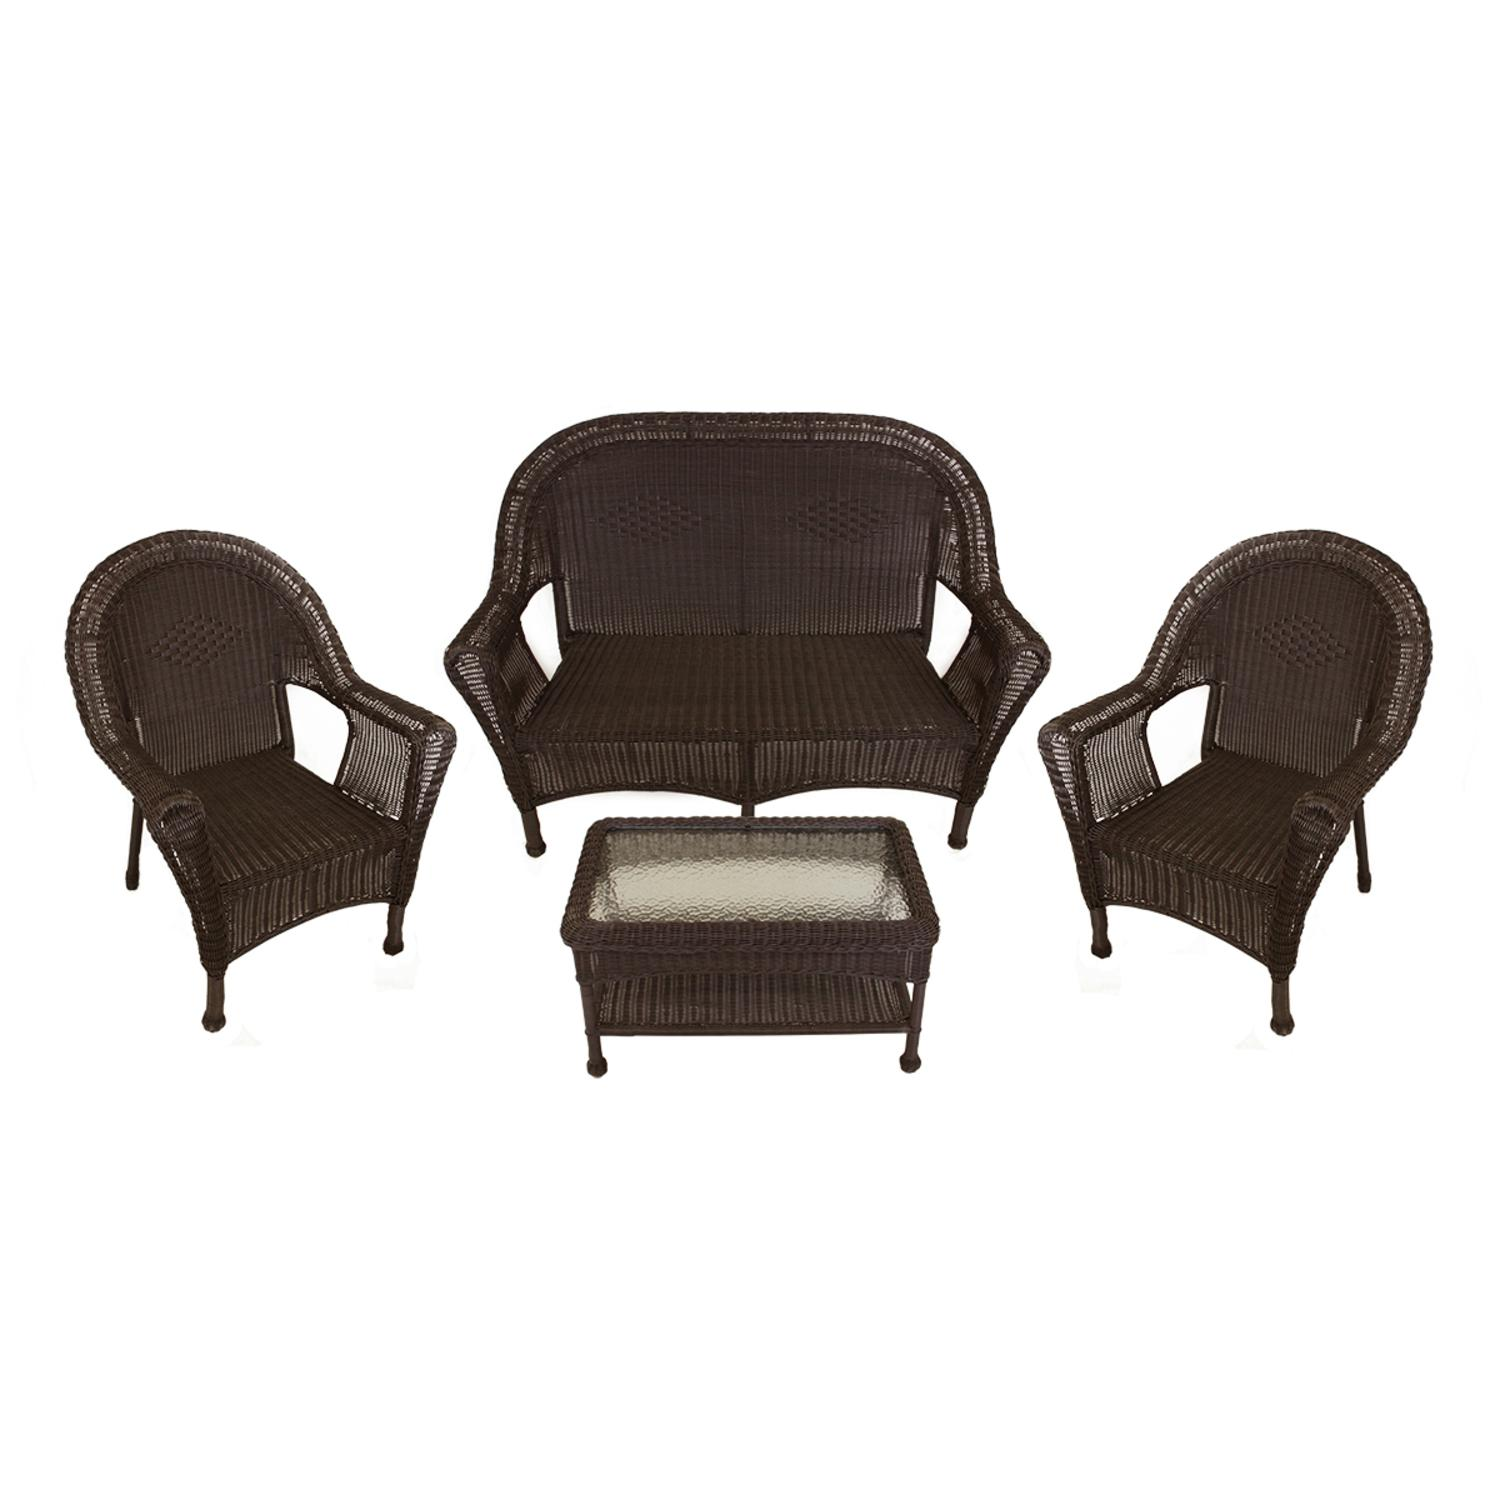 4 piece brown resin wicker patio furniture set 2 chairs loveseat table